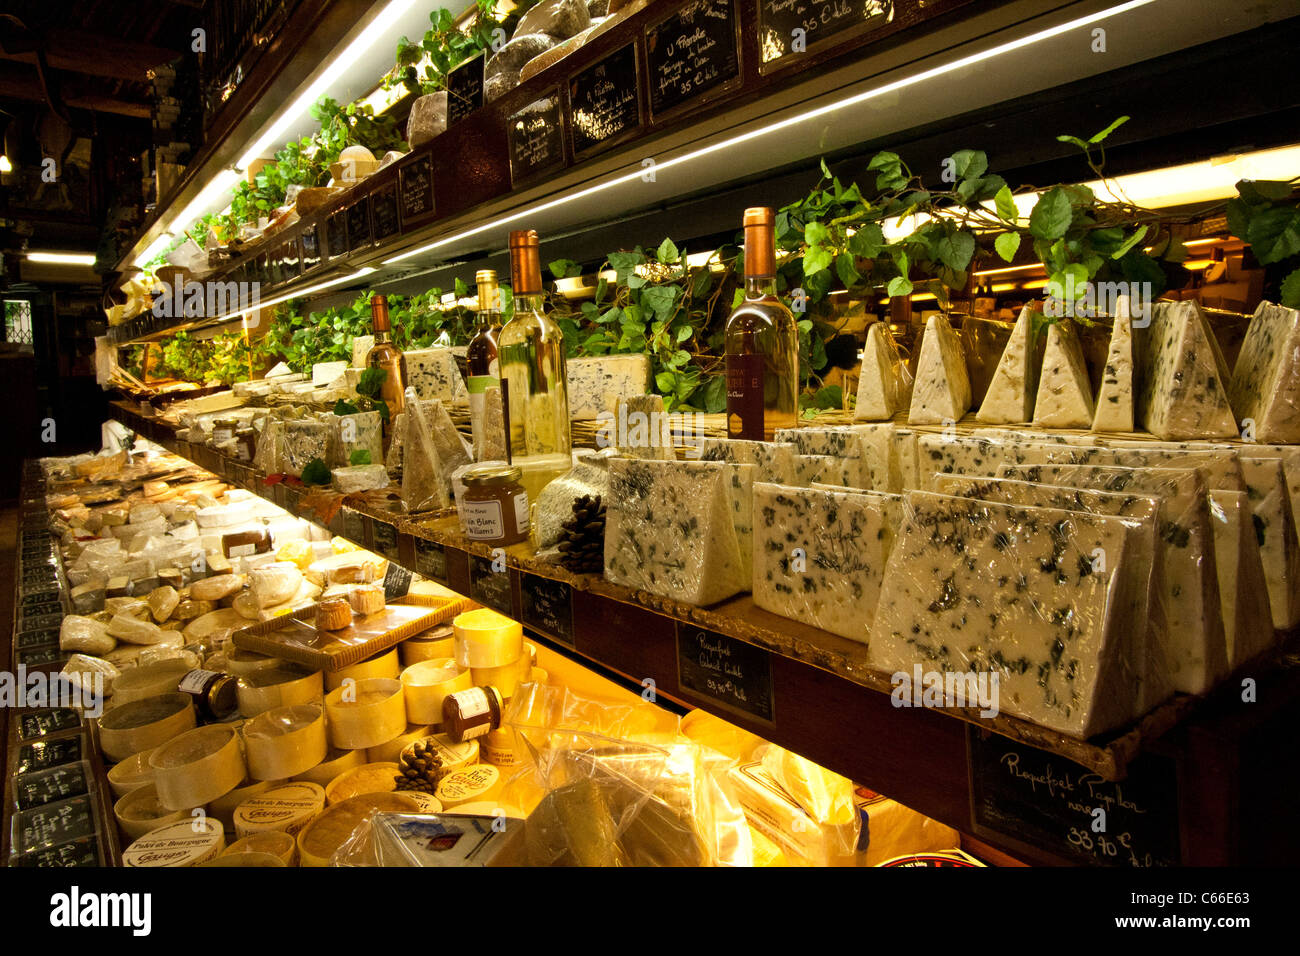 Cheese/Fromage Store - Stock Image